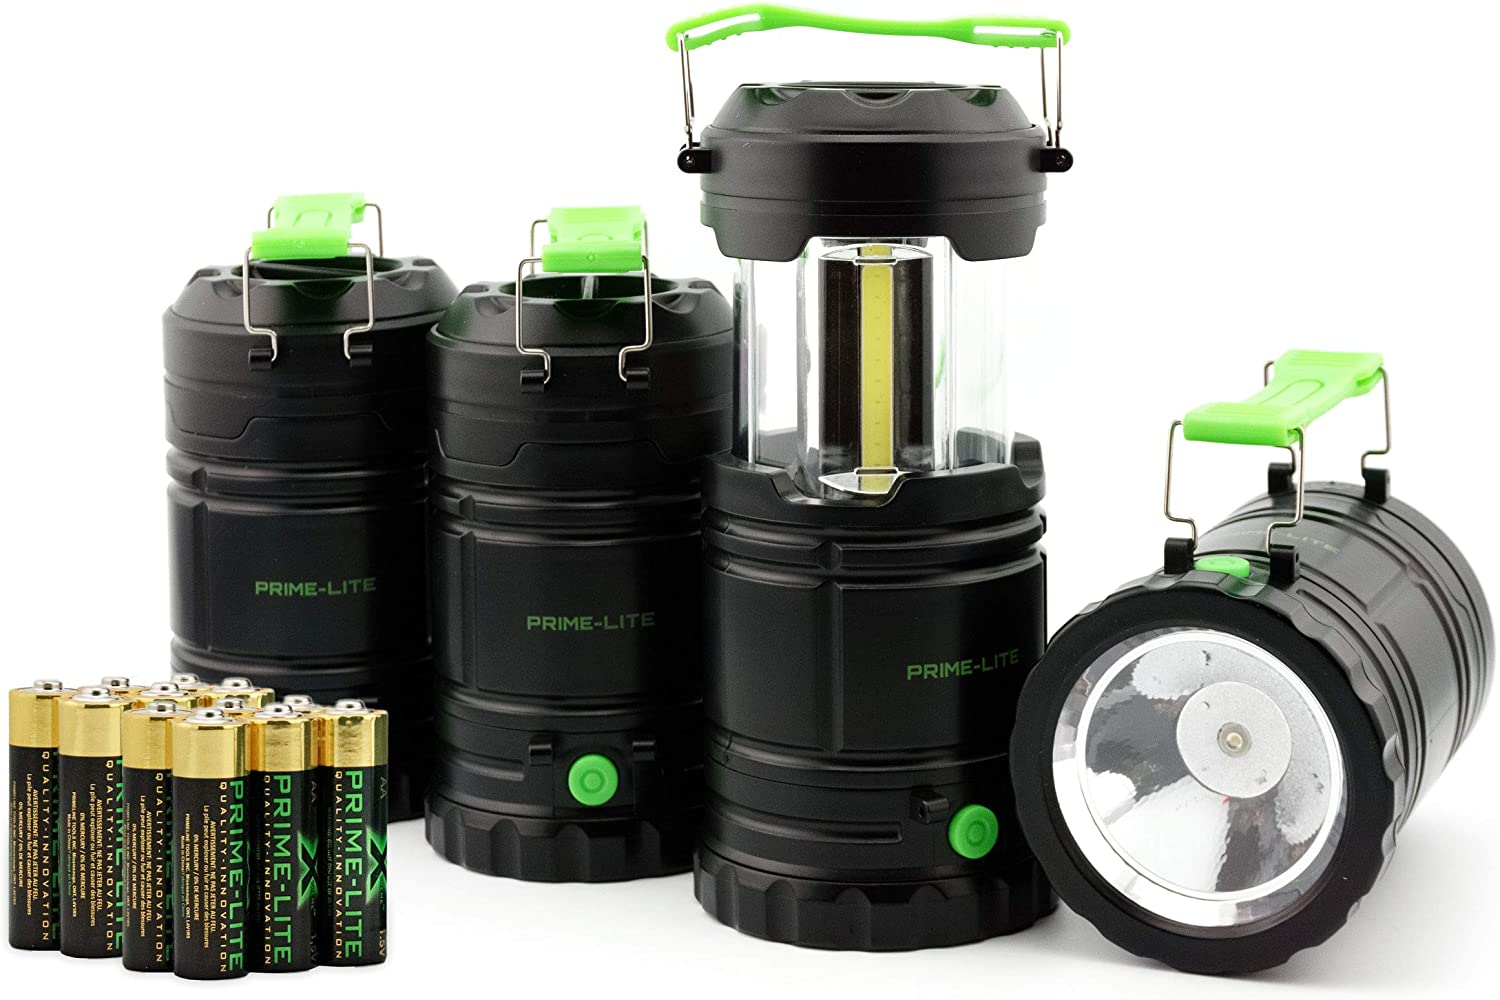 Prime-lite Camping Lantern Pack of 4 with Led - Battery Operated Lights - Led Lantern - Flashlights for Emergencies - Hurricane Supplies for Home - Used for Fishing, Hiking & Camping (Batteries Inc)